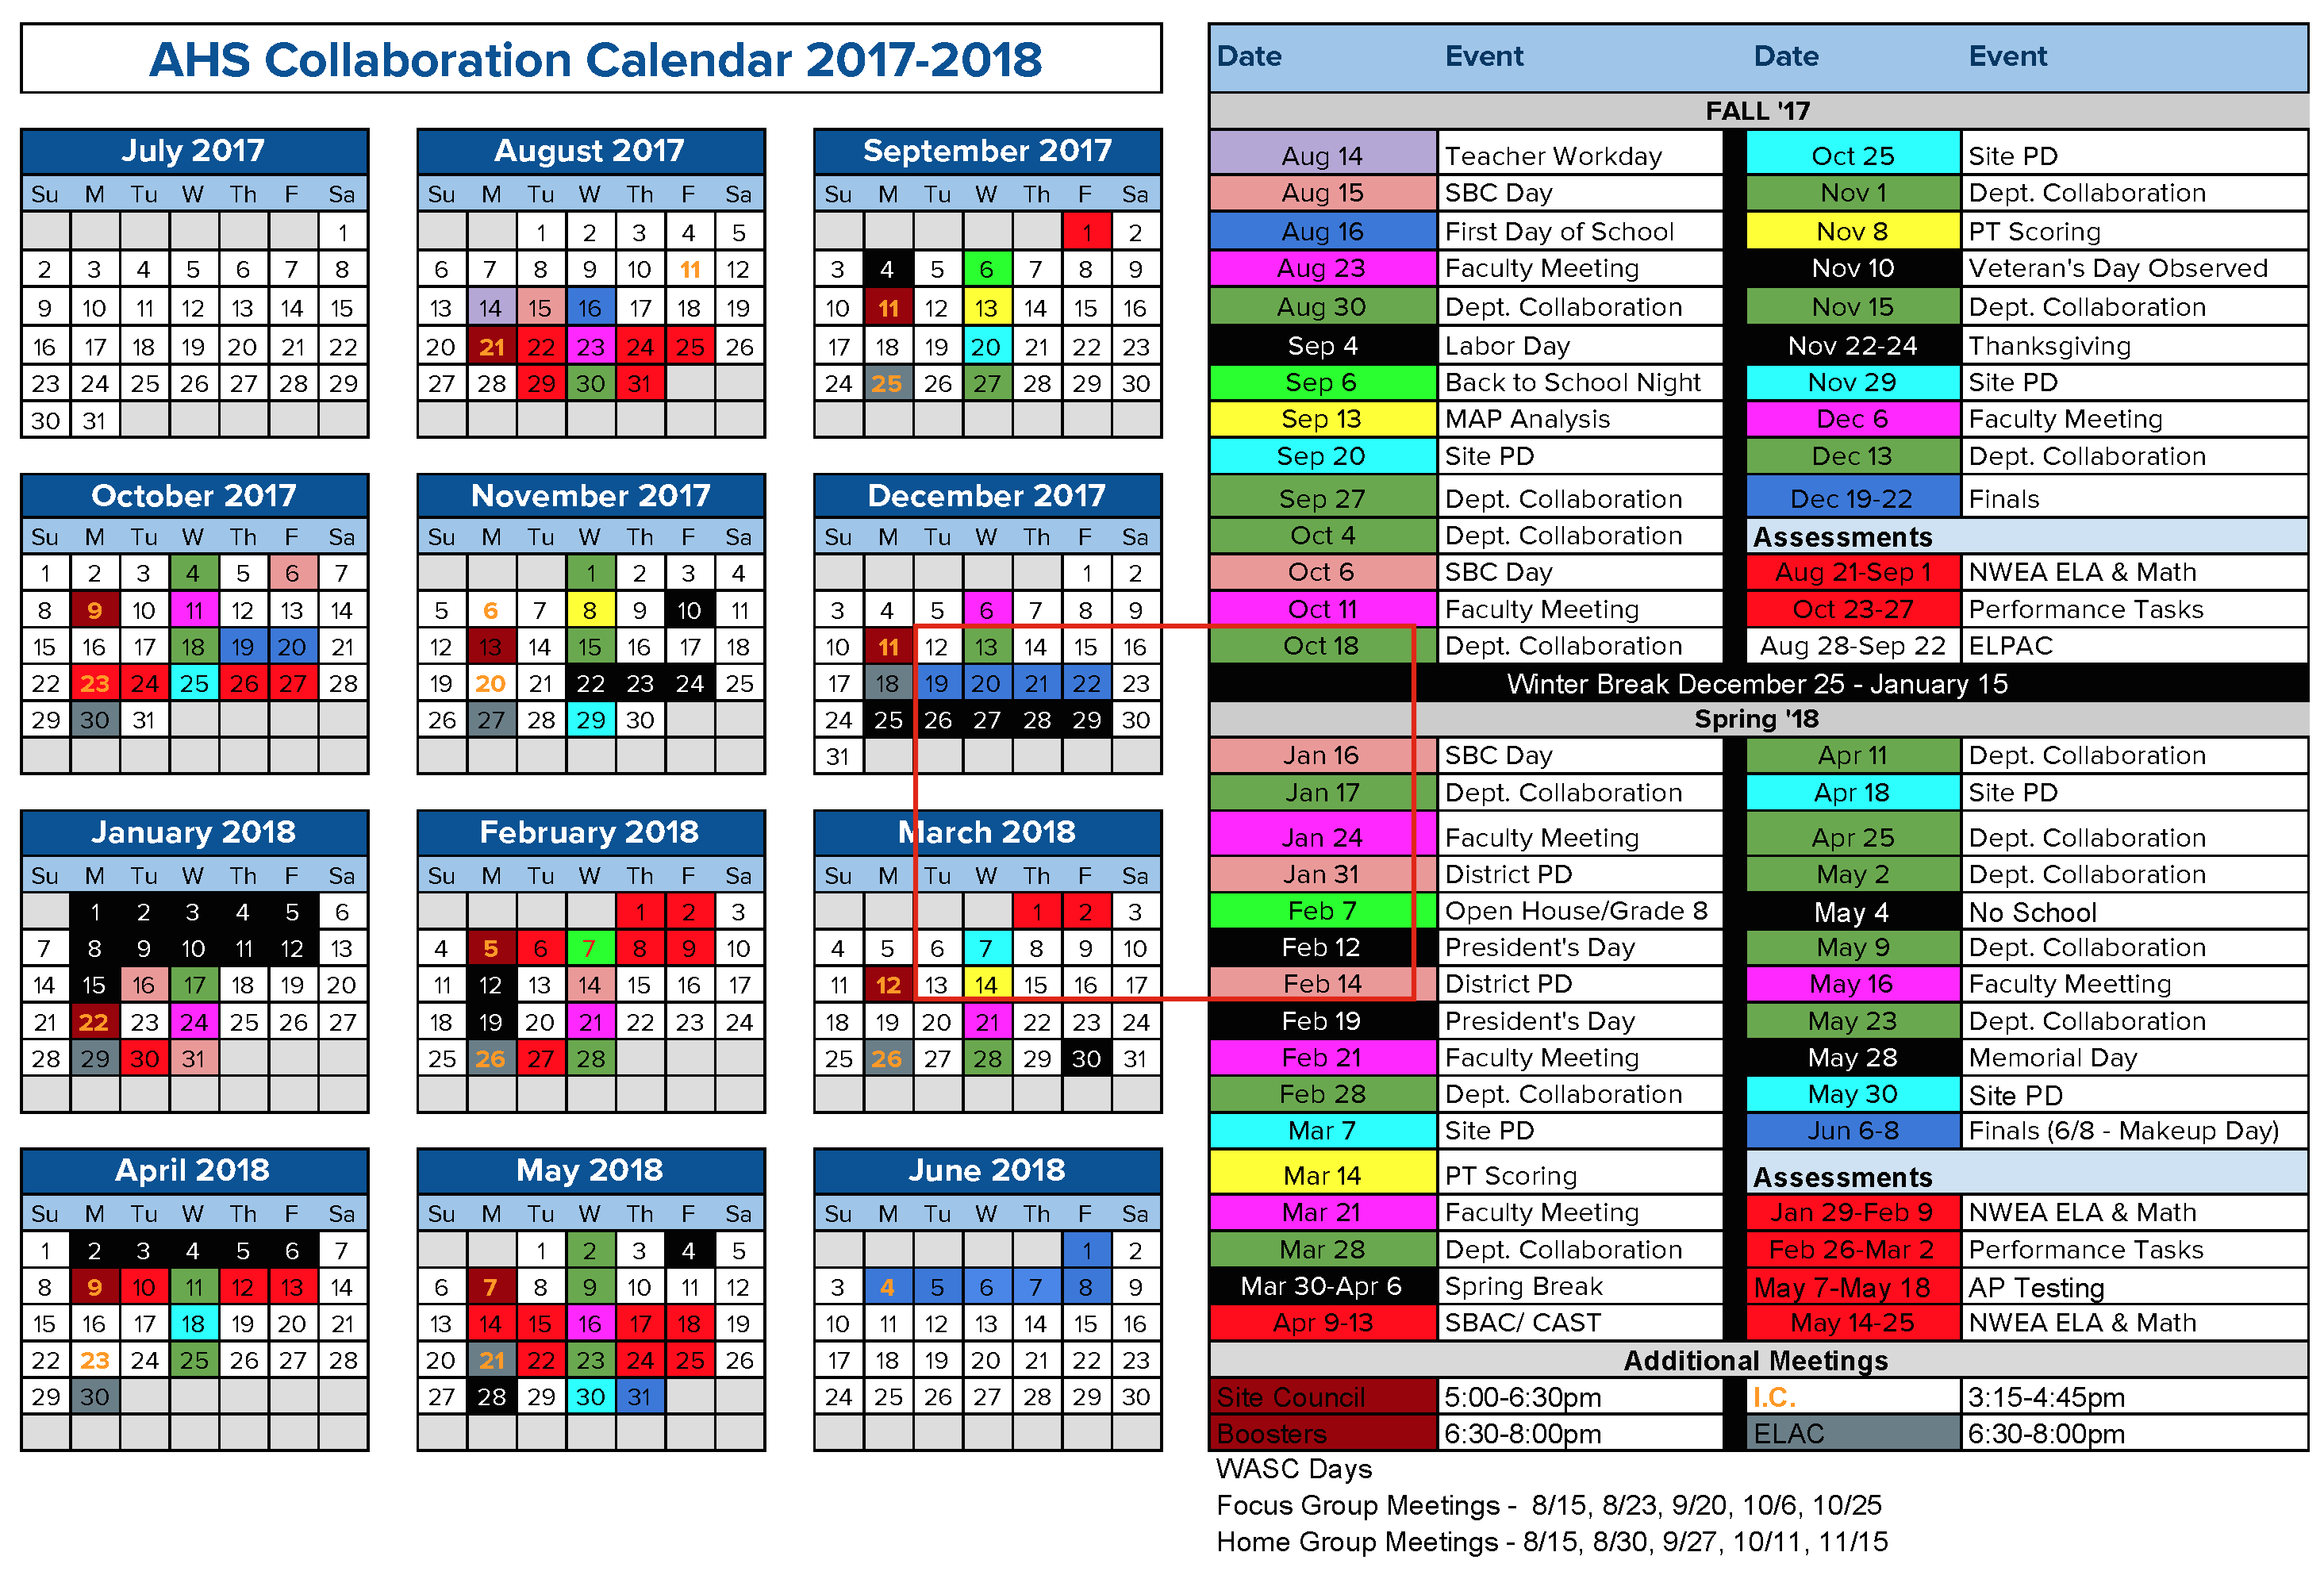 2017-2018 AHS Collaboration Calendar - Year.png